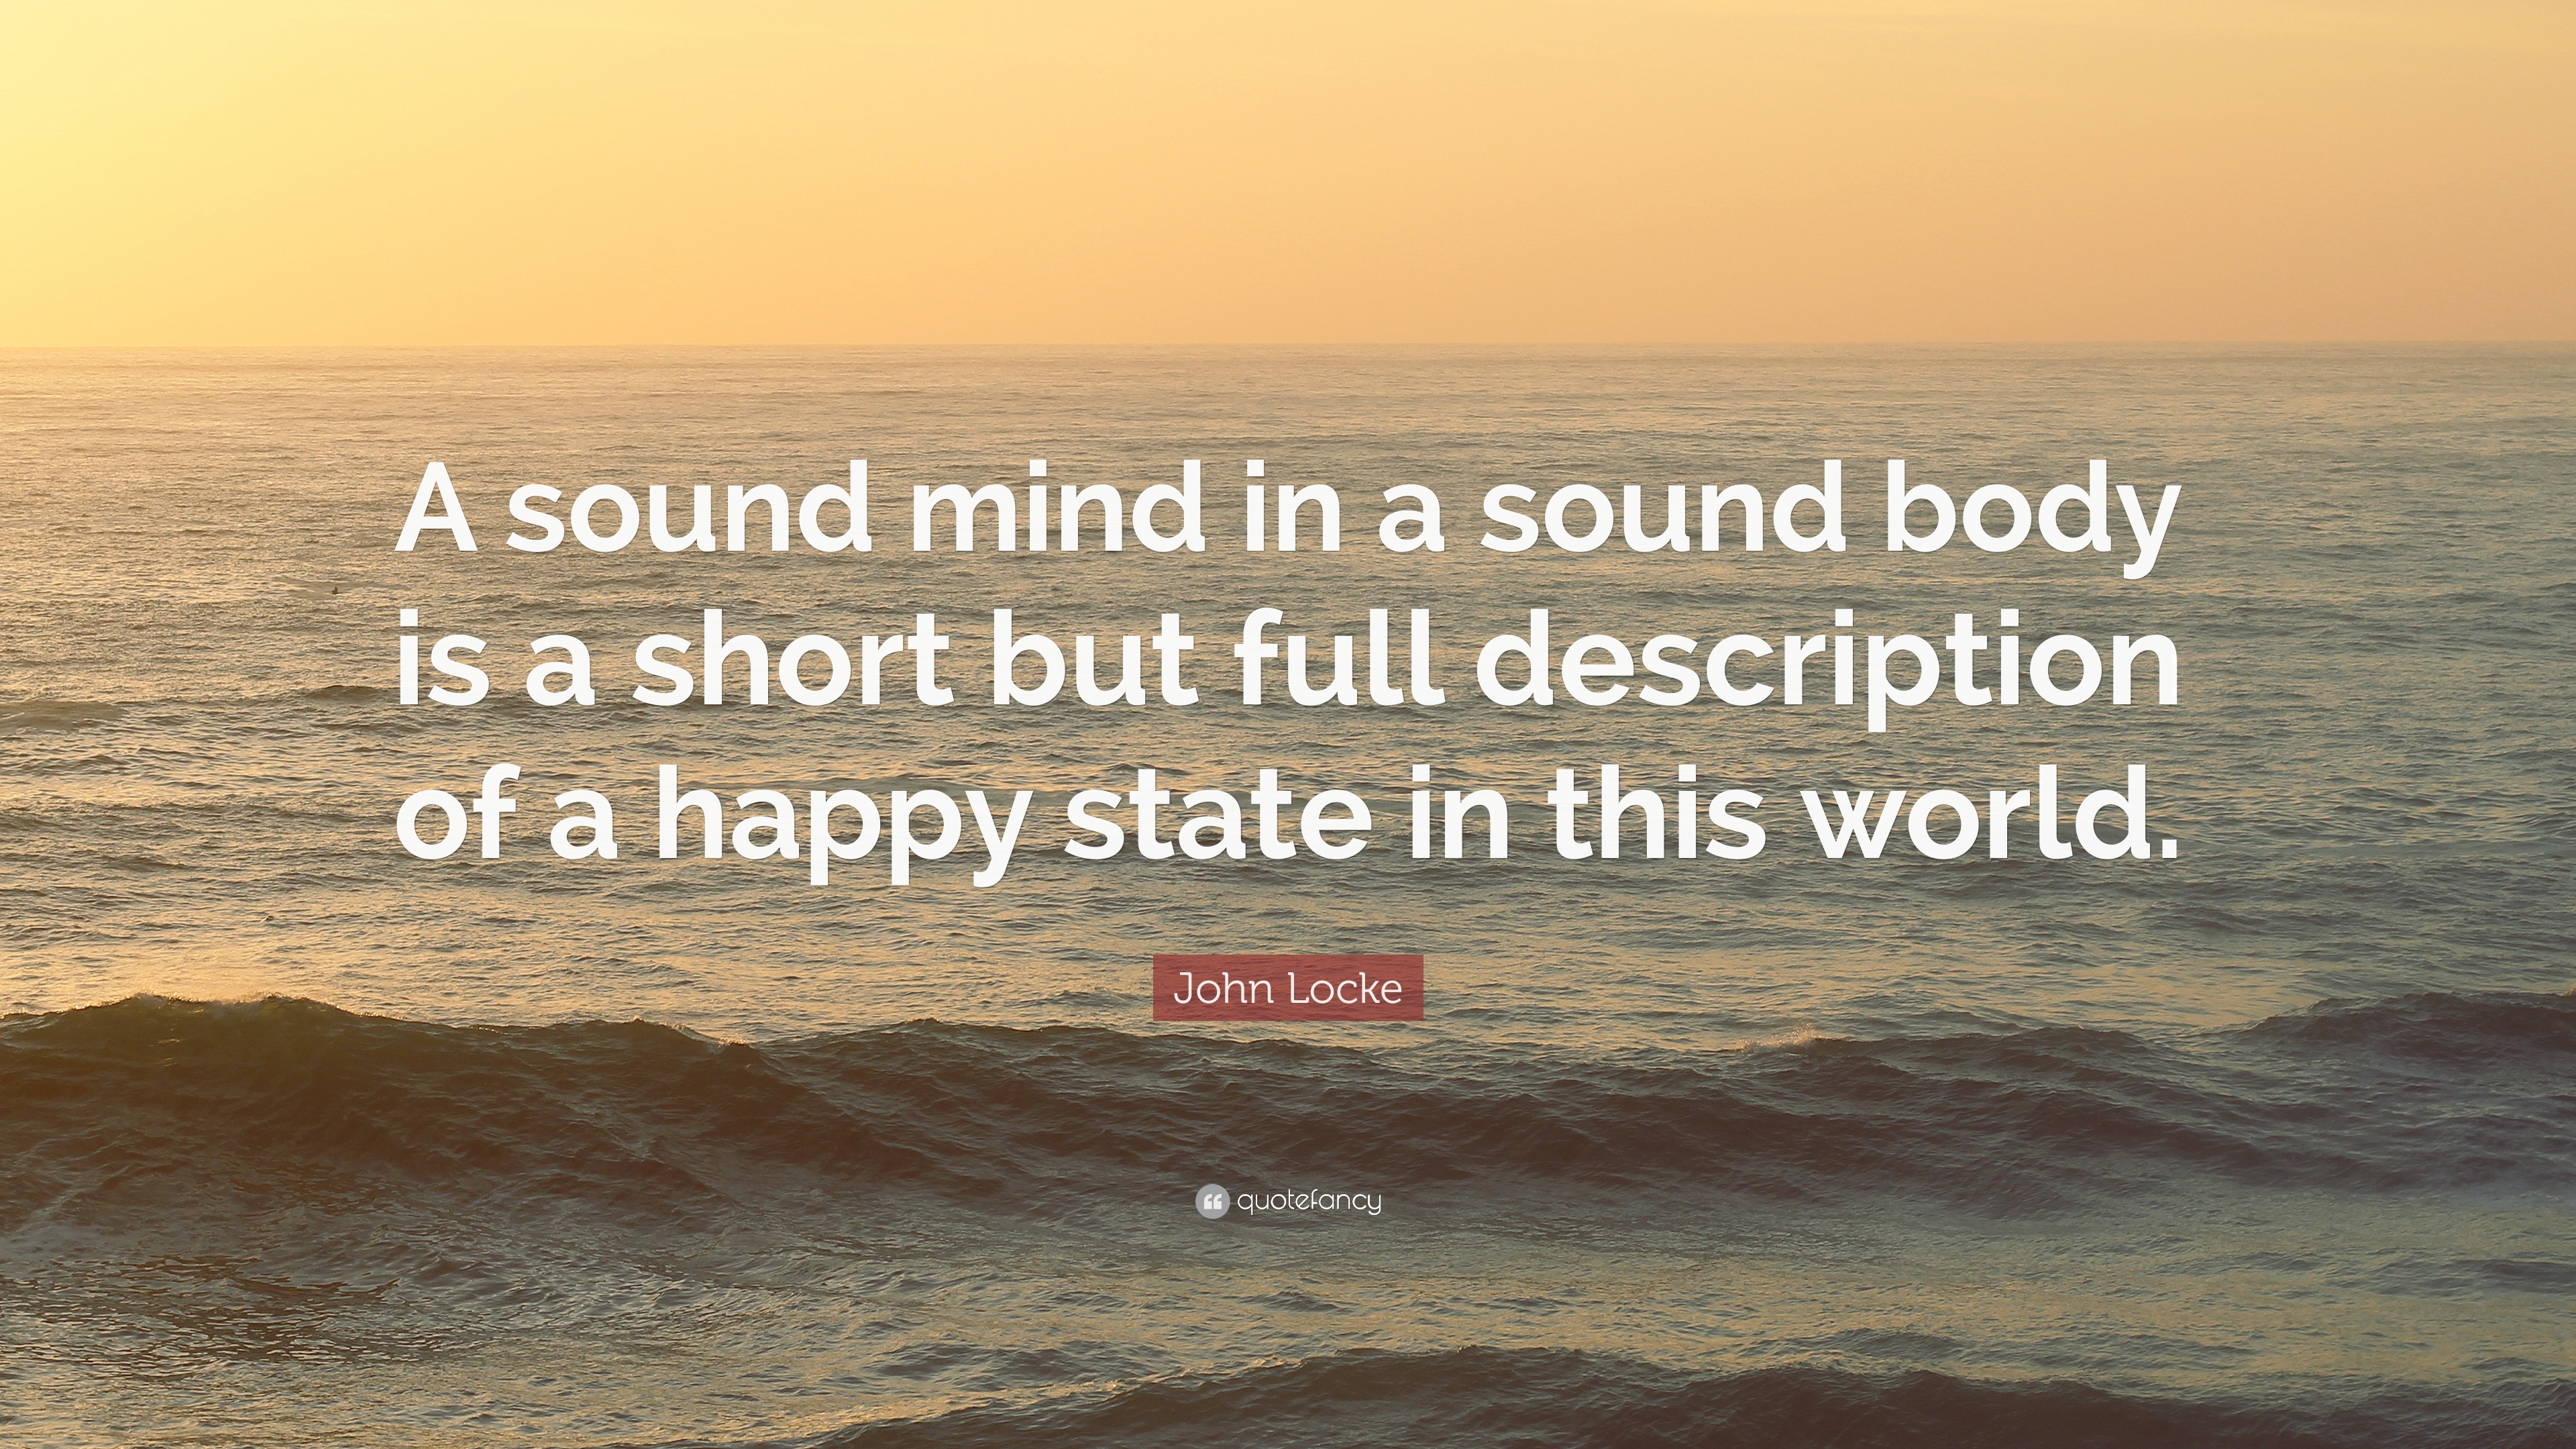 John Locke Quote: U201cA Sound Mind In A Sound Body Is A Short But